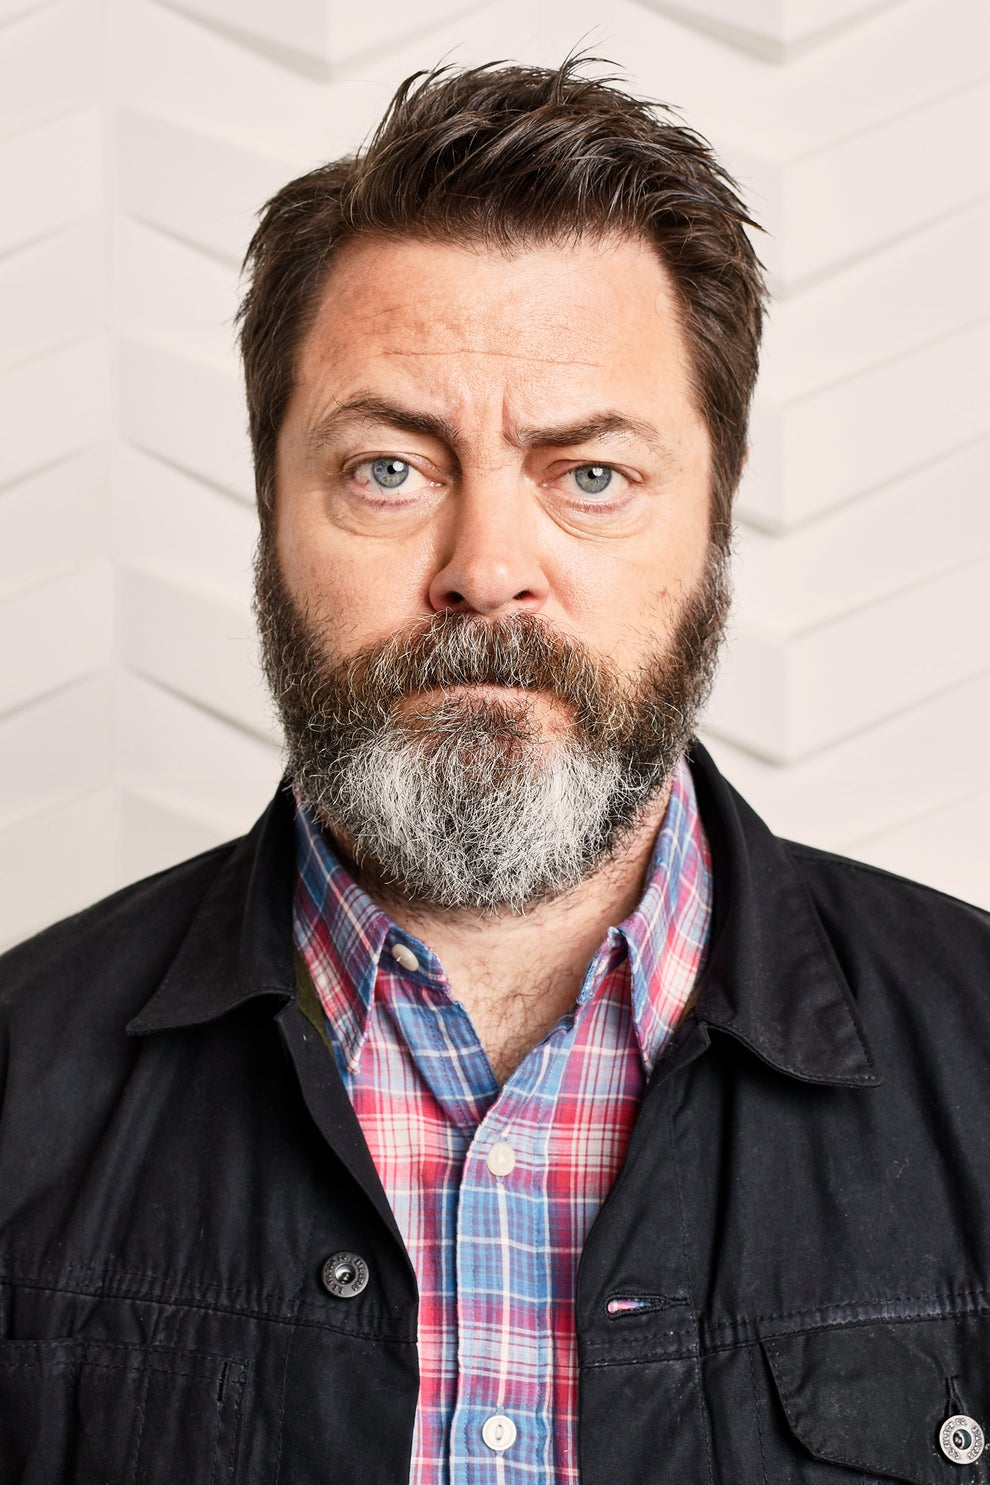 Infinity Baby and The Hero star Nick Offerman